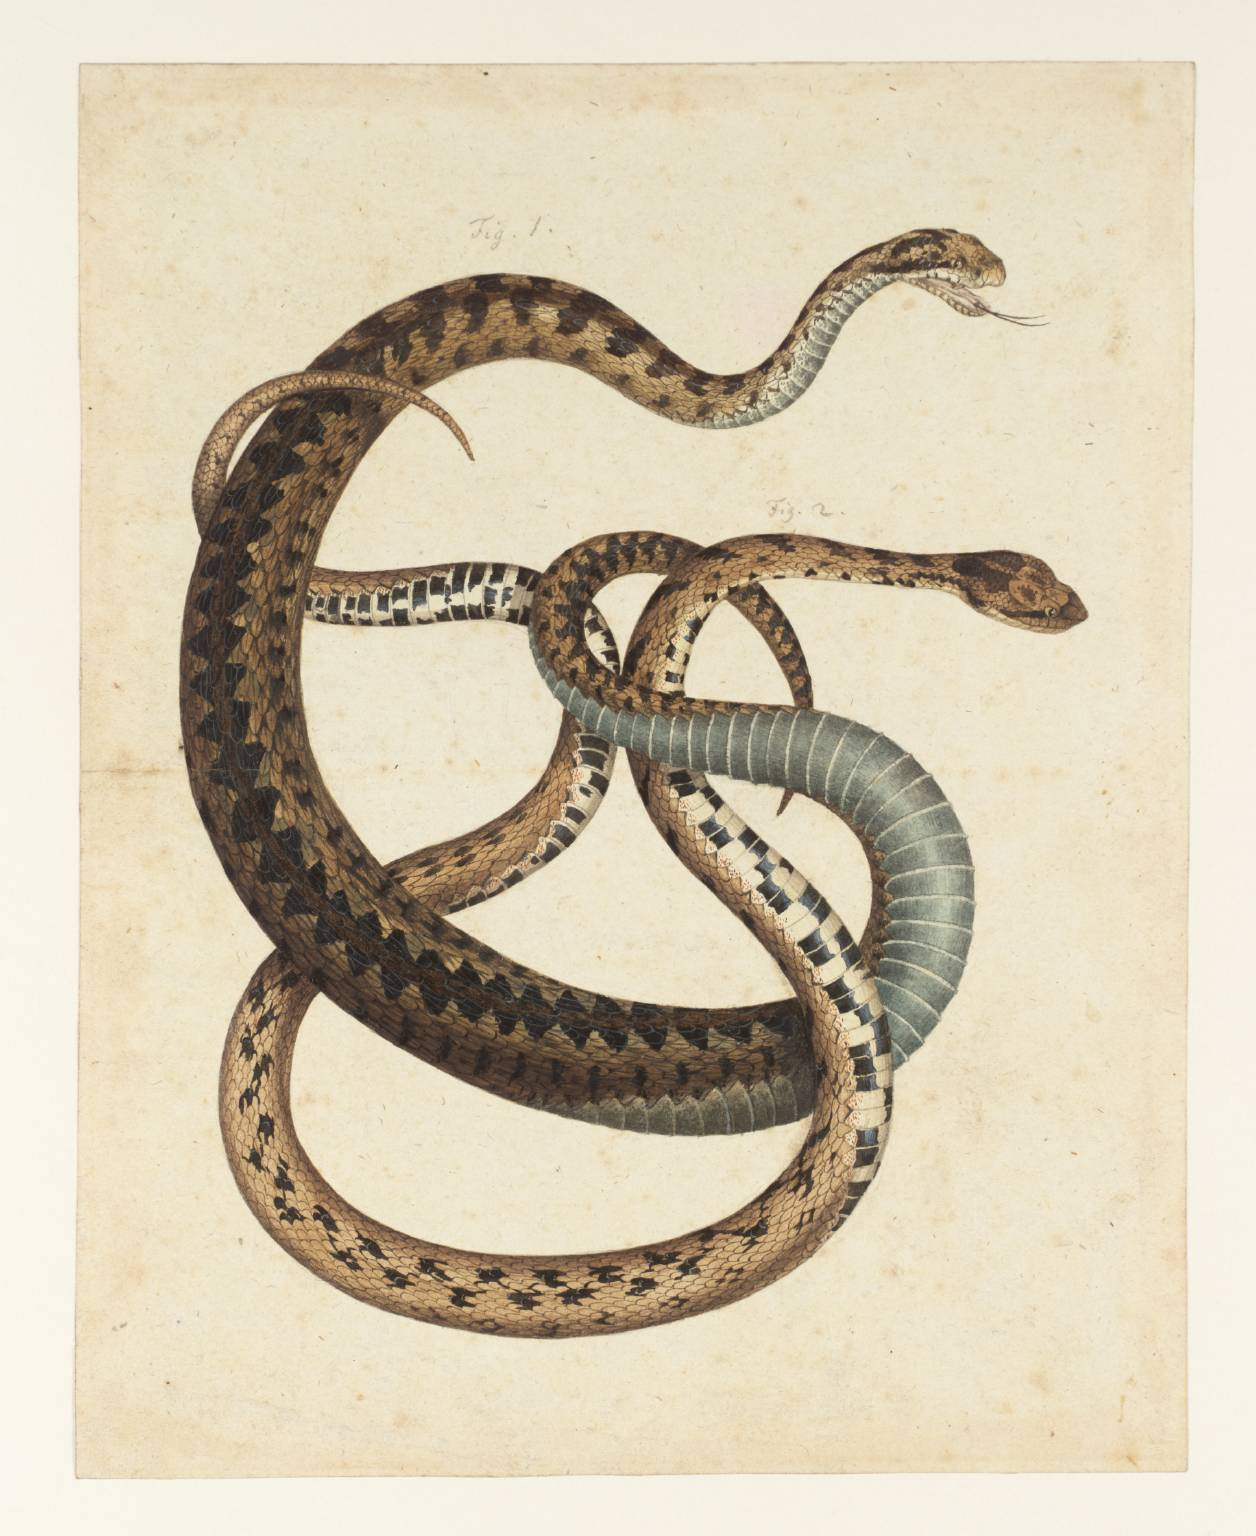 Snakes As Symbols In Art Rileys Focused Inquiry Blog